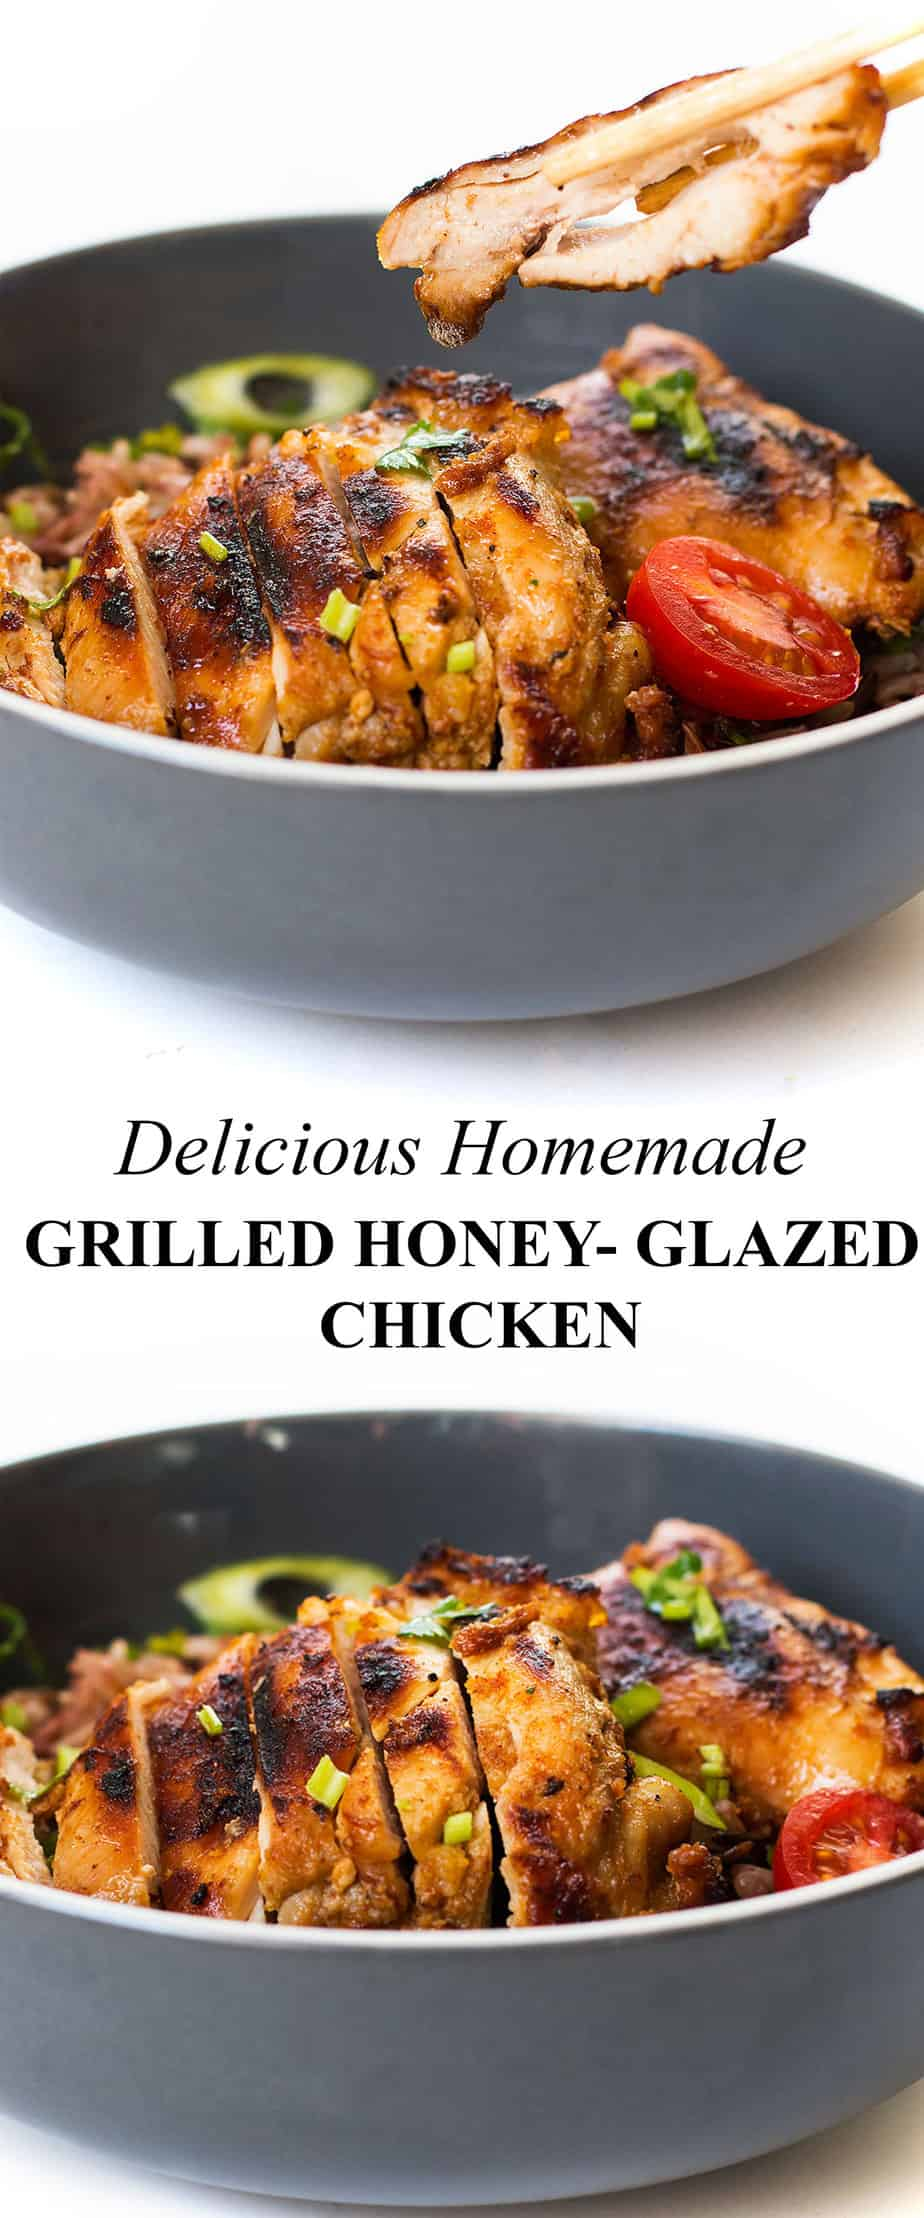 grilled-honey-glazed-chicken-recipe-pinterest. Make a quick and easy sauce for bites of boneless chicken breast. A touch of Mexican chili pepper adds kick .